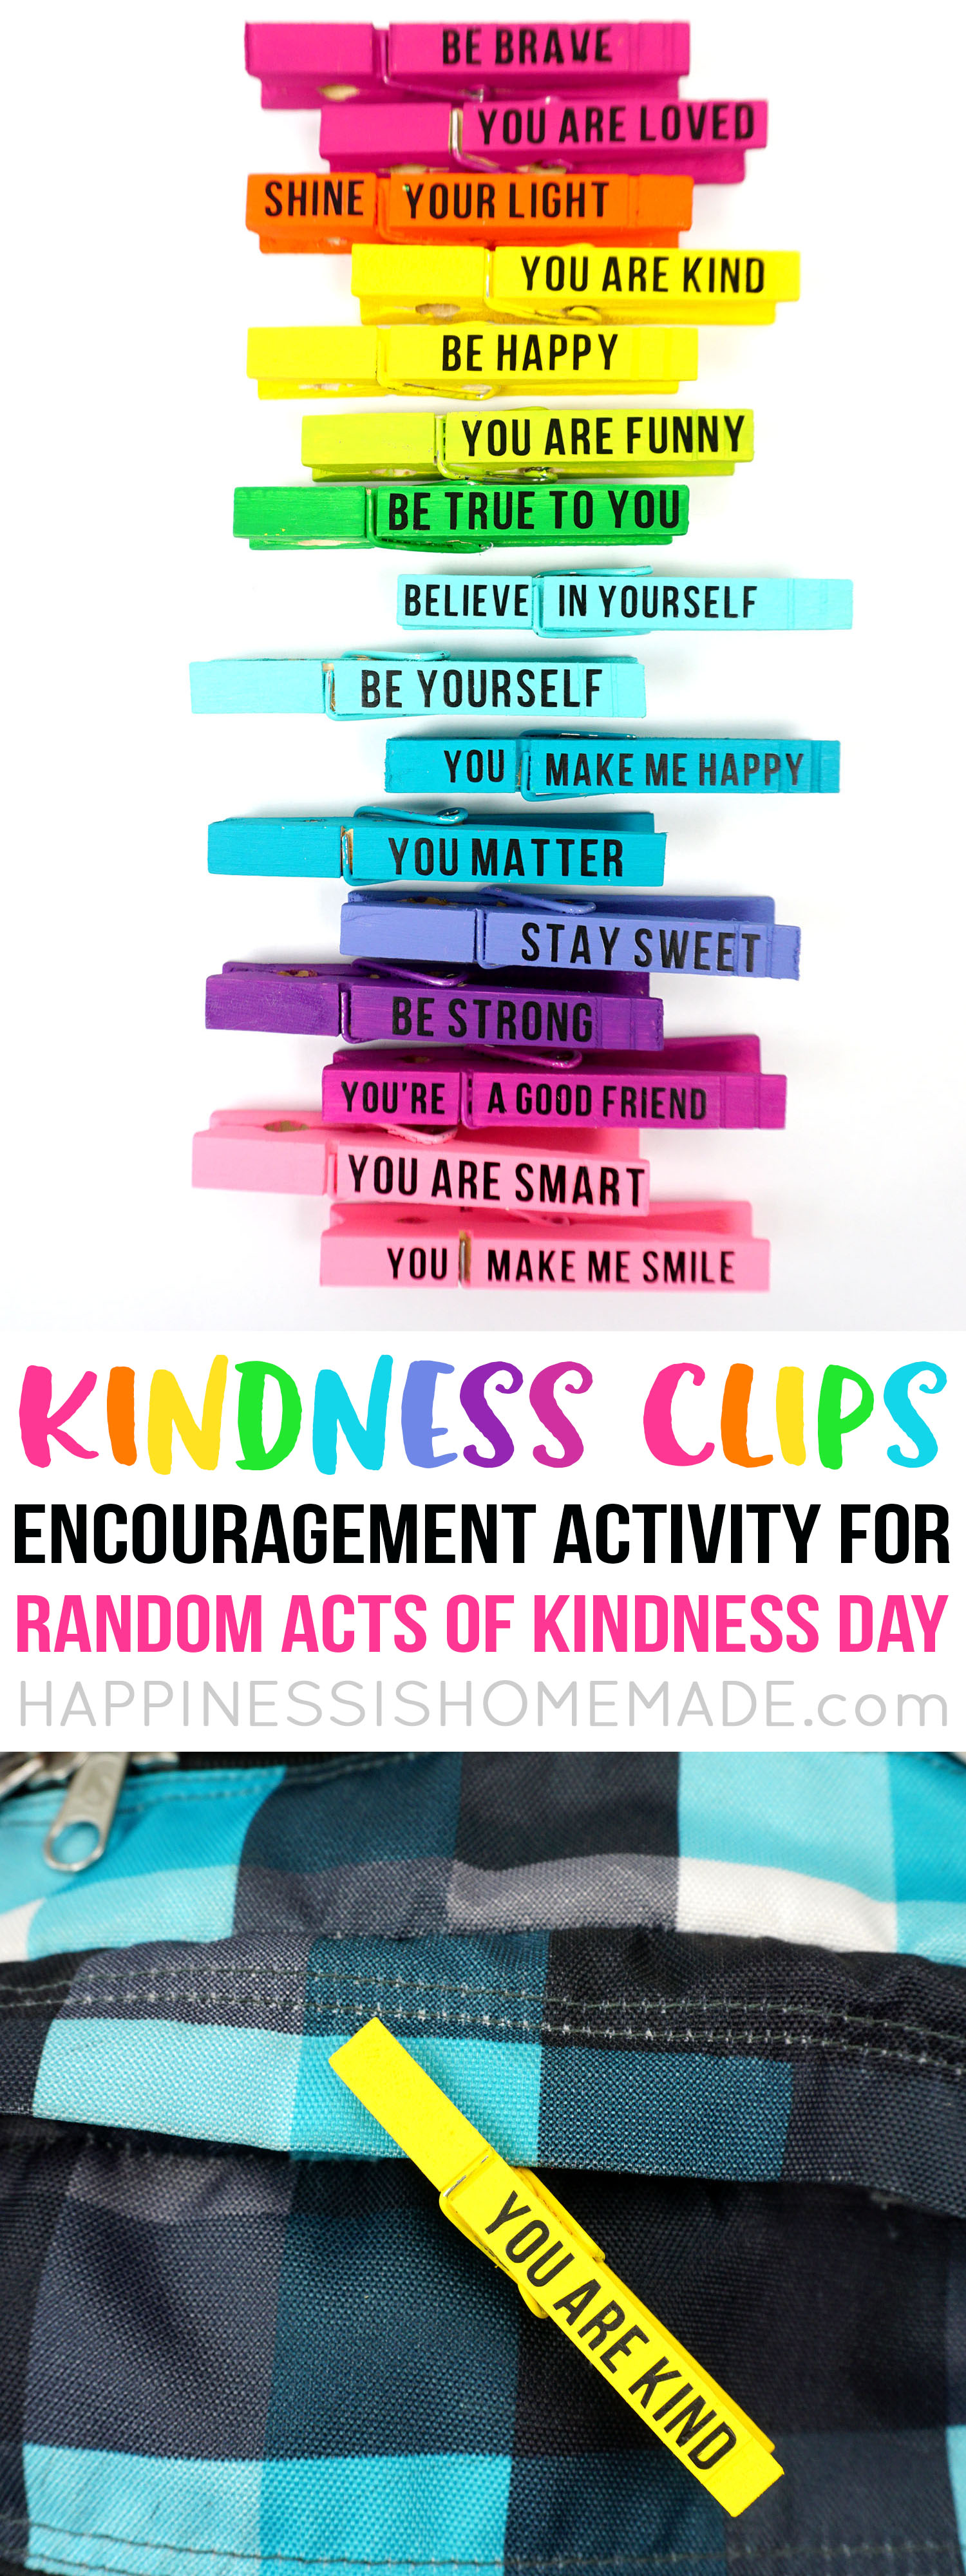 Kindness Clips: Random Acts of Kindness Idea - Happiness is